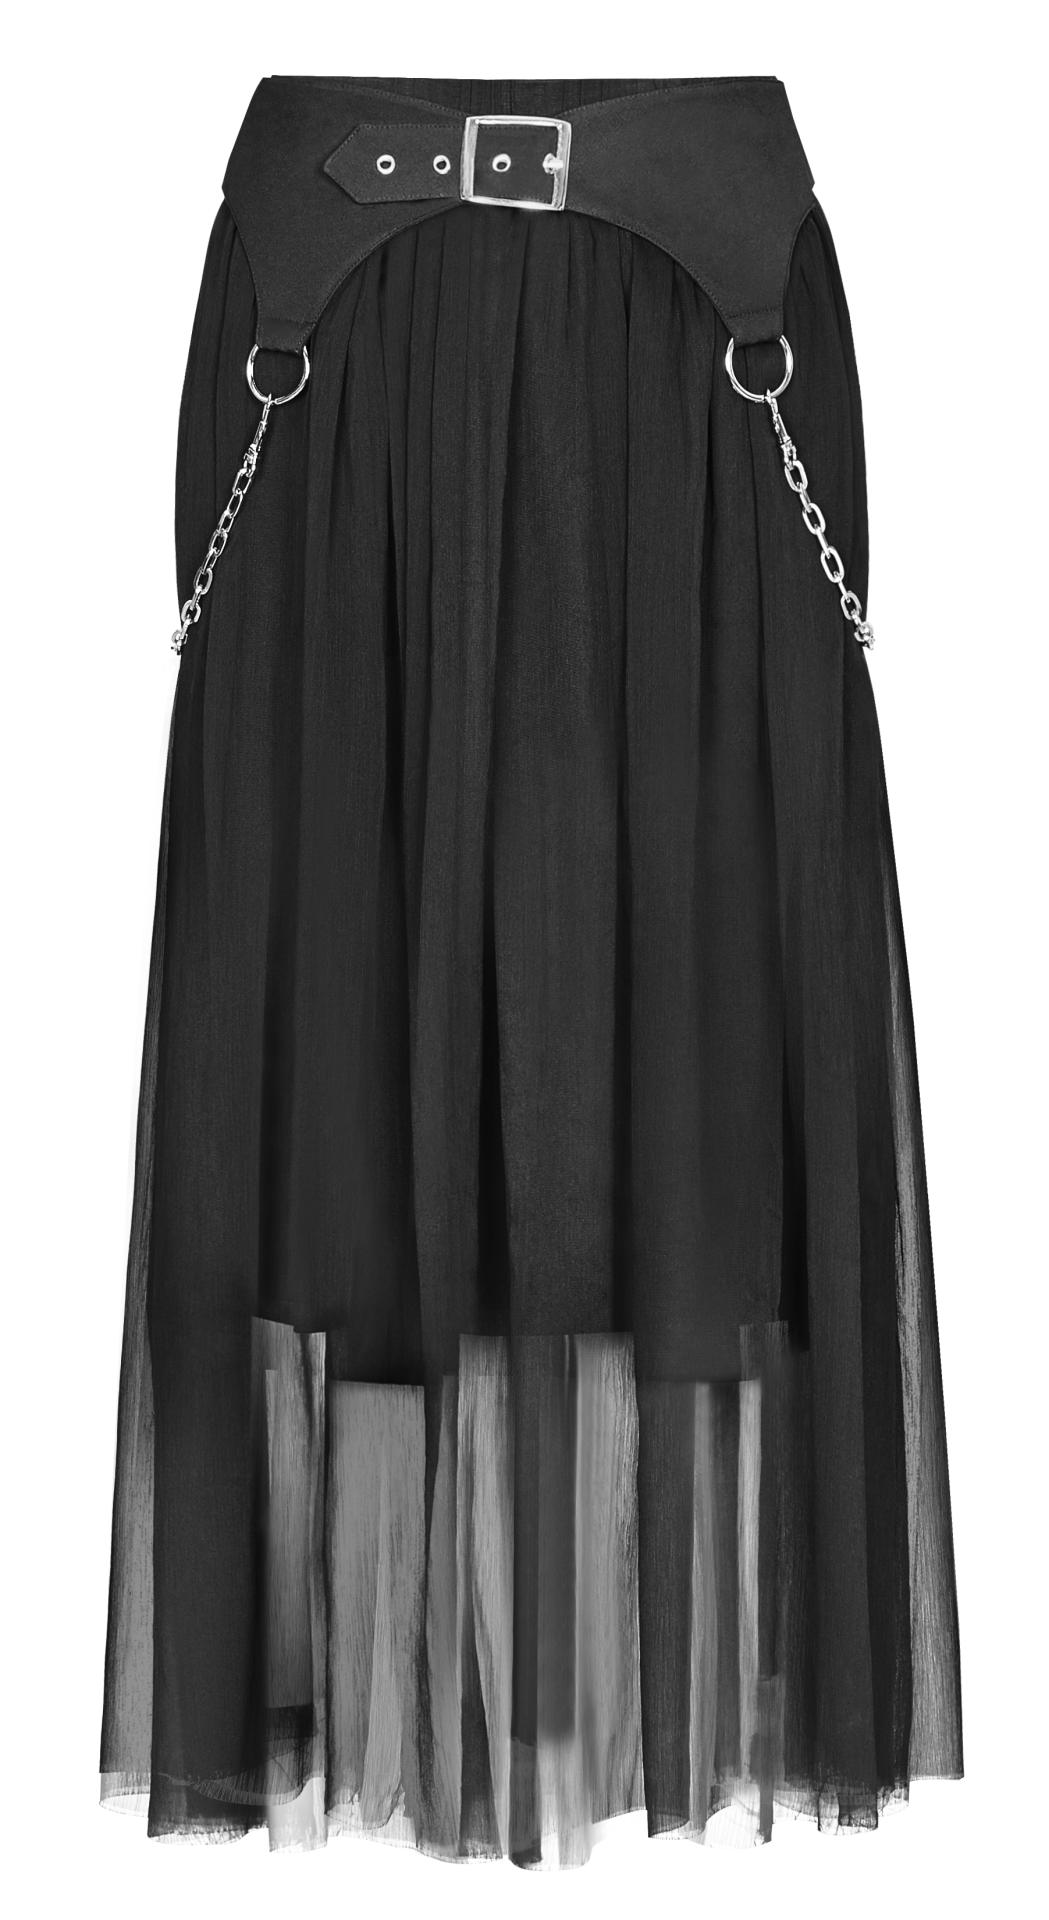 Punk Rave Elsbeth Midi Skirt with Integral Belt Chains - Kate's Clothing